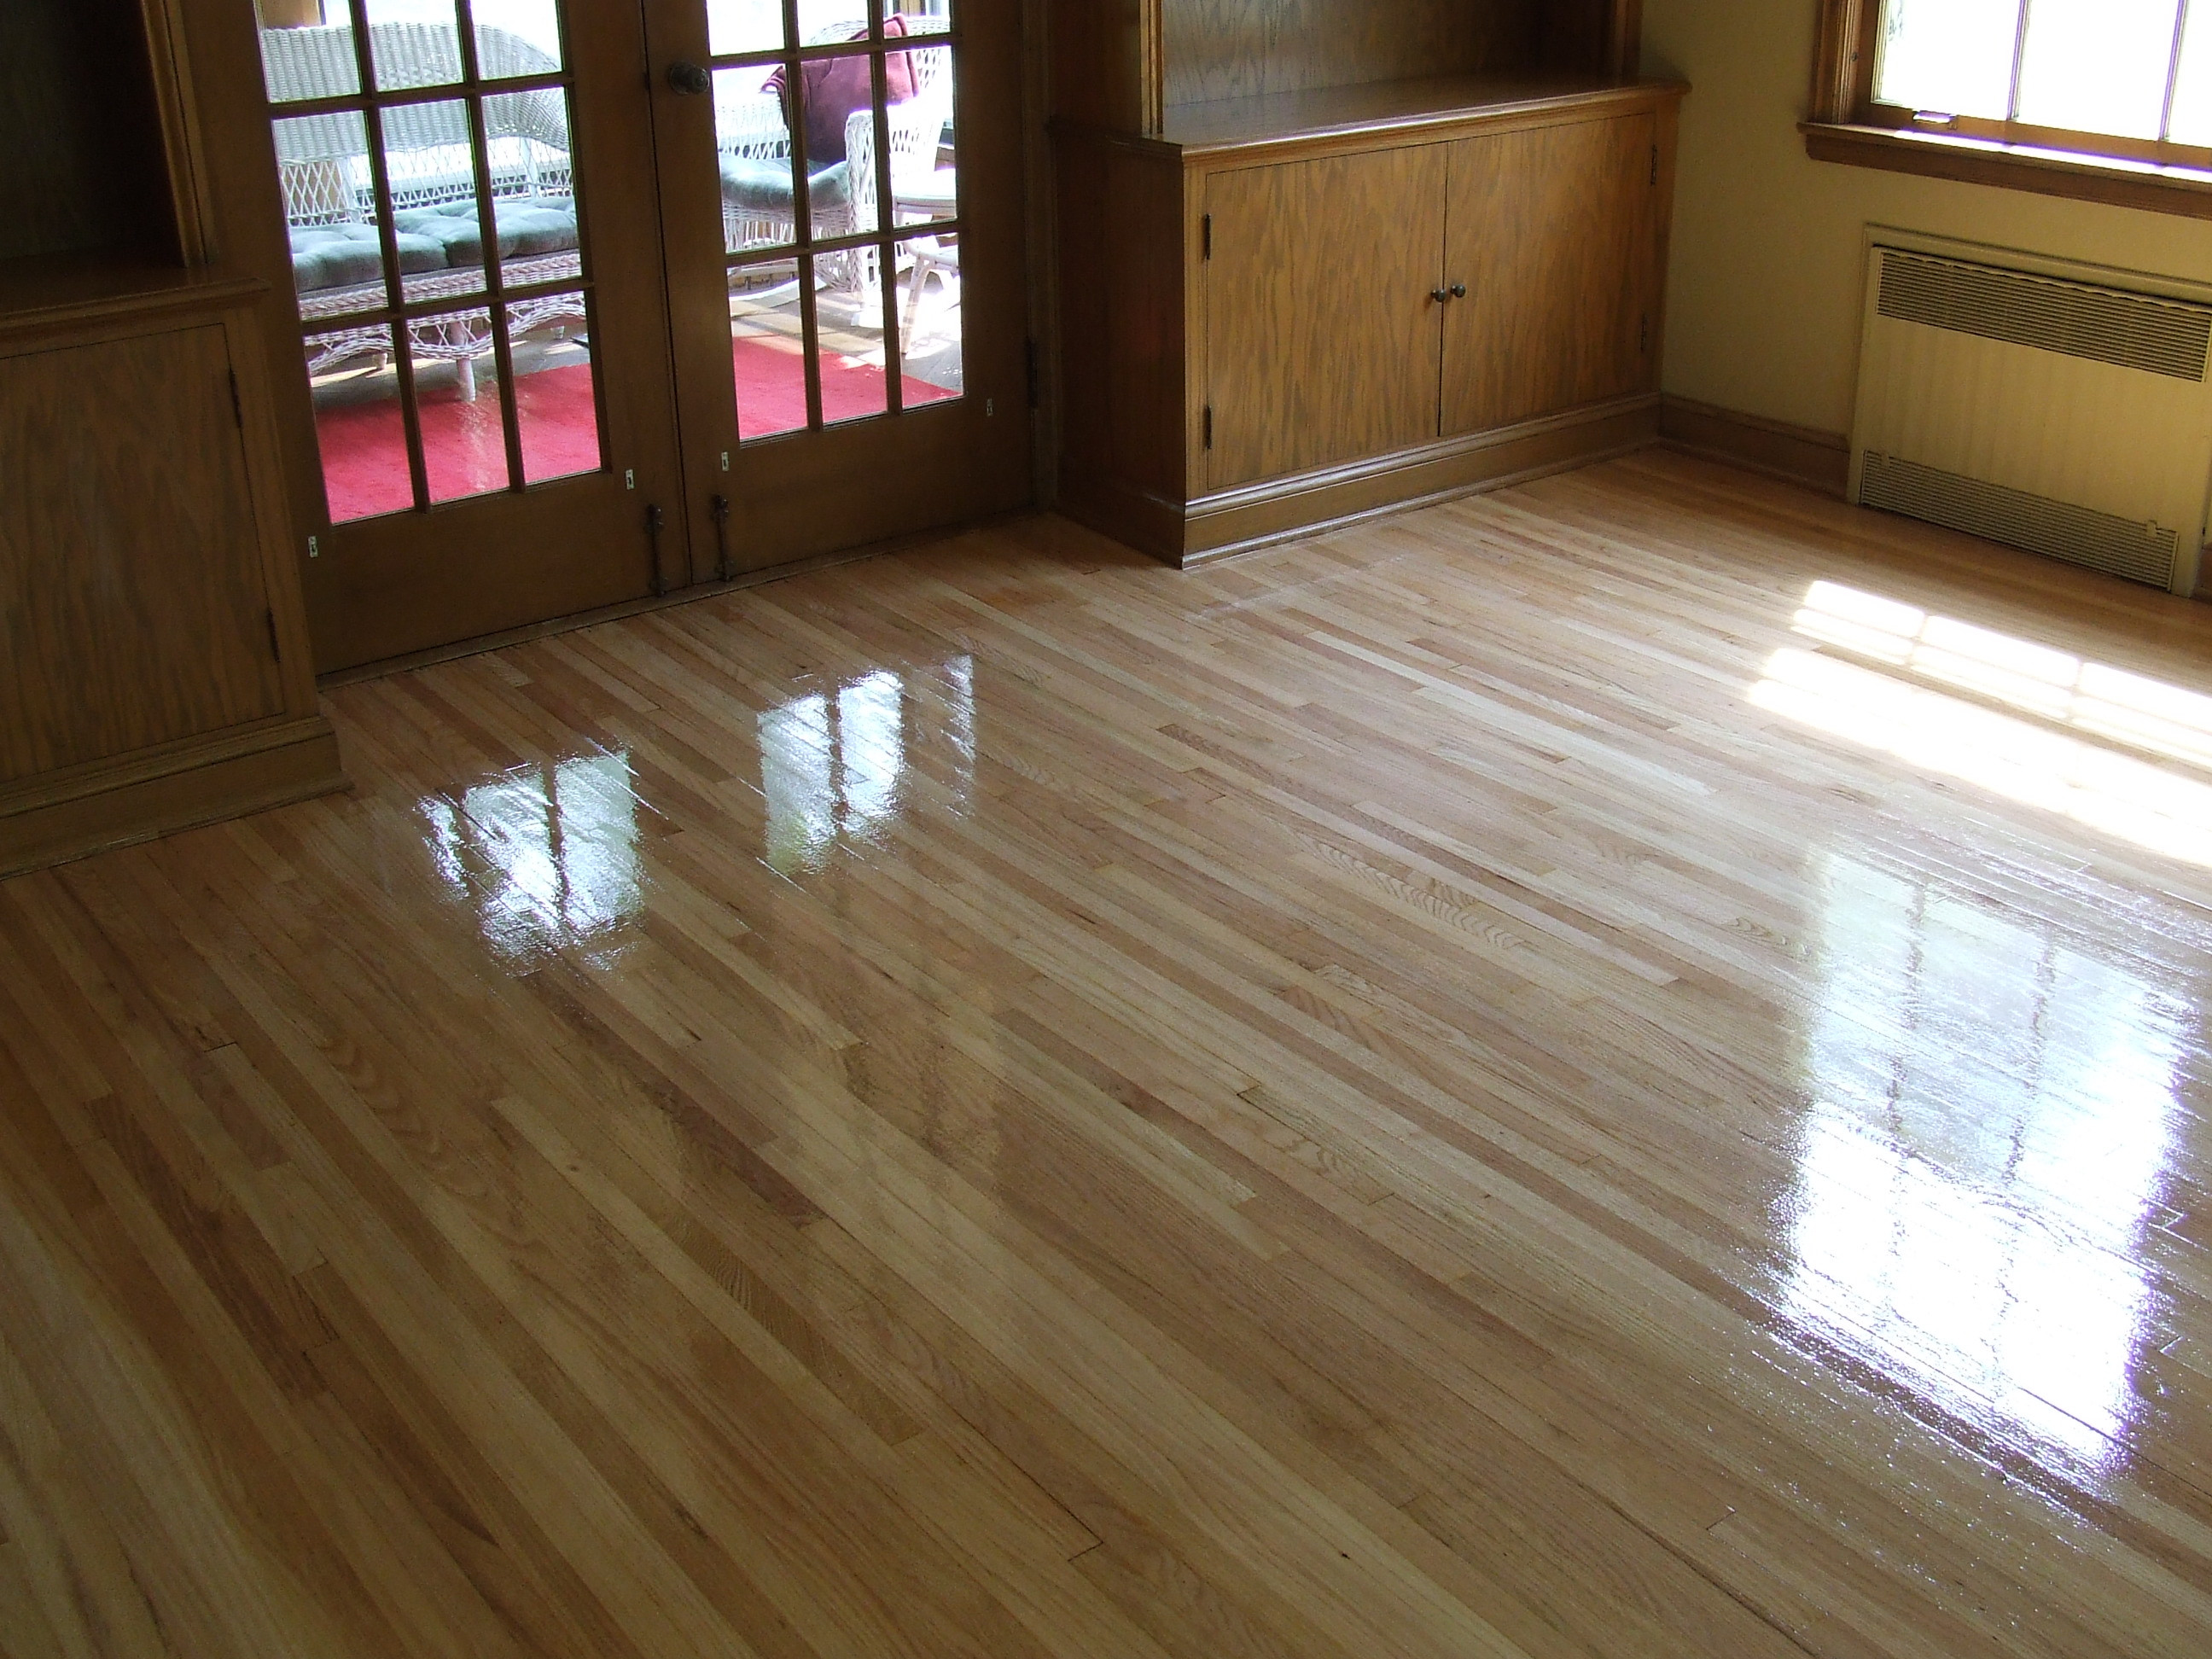 hardwood floor refinishing calgary of breathtaking hardwood flooring deals beautiful floors are here only regarding breathtaking hardwood flooring deal floor refinishing niagara niagarahardwoodflooring ca 103 ontario in gtum canada mississauga vancouver